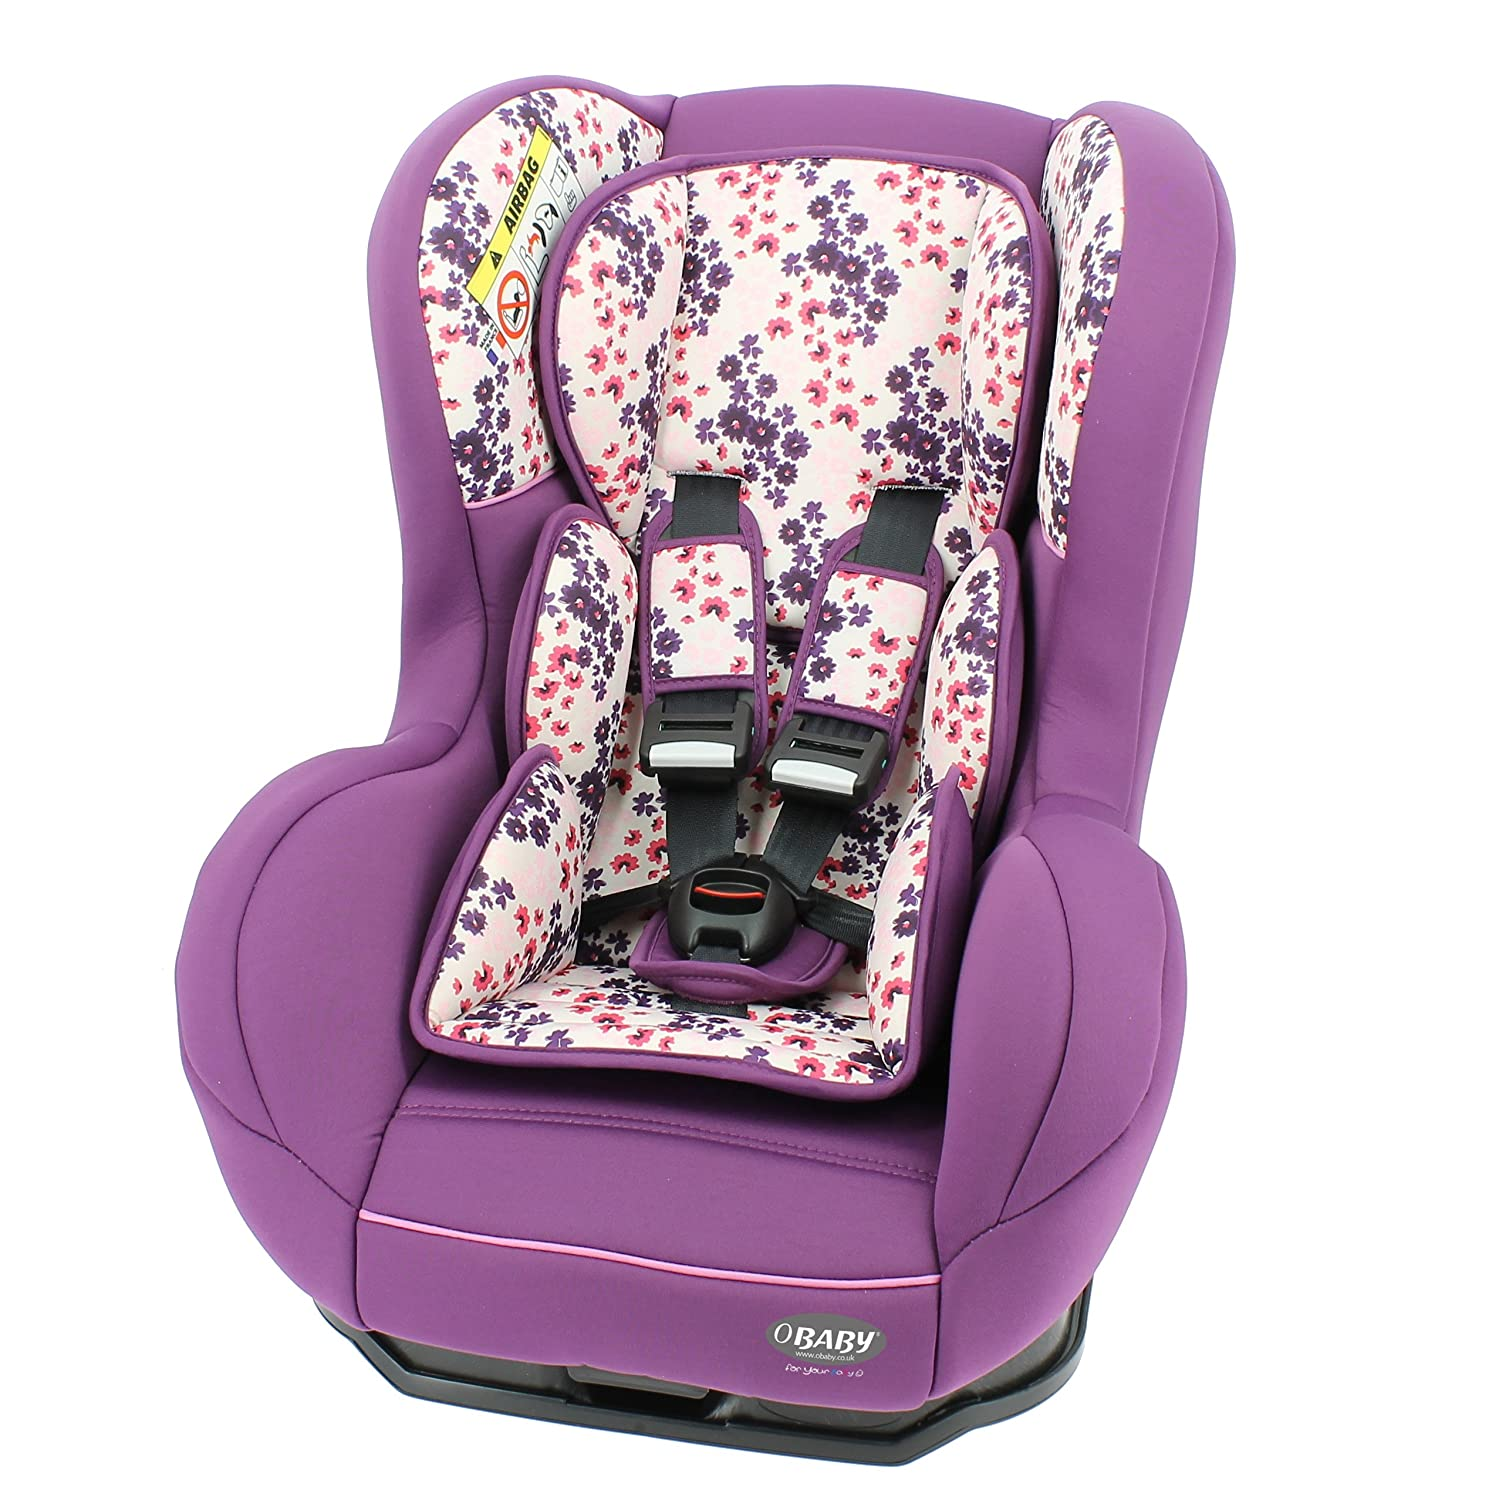 Obaby Group 0-1 Combination Car Seat (Little Cutie): Amazon.co.uk: Baby